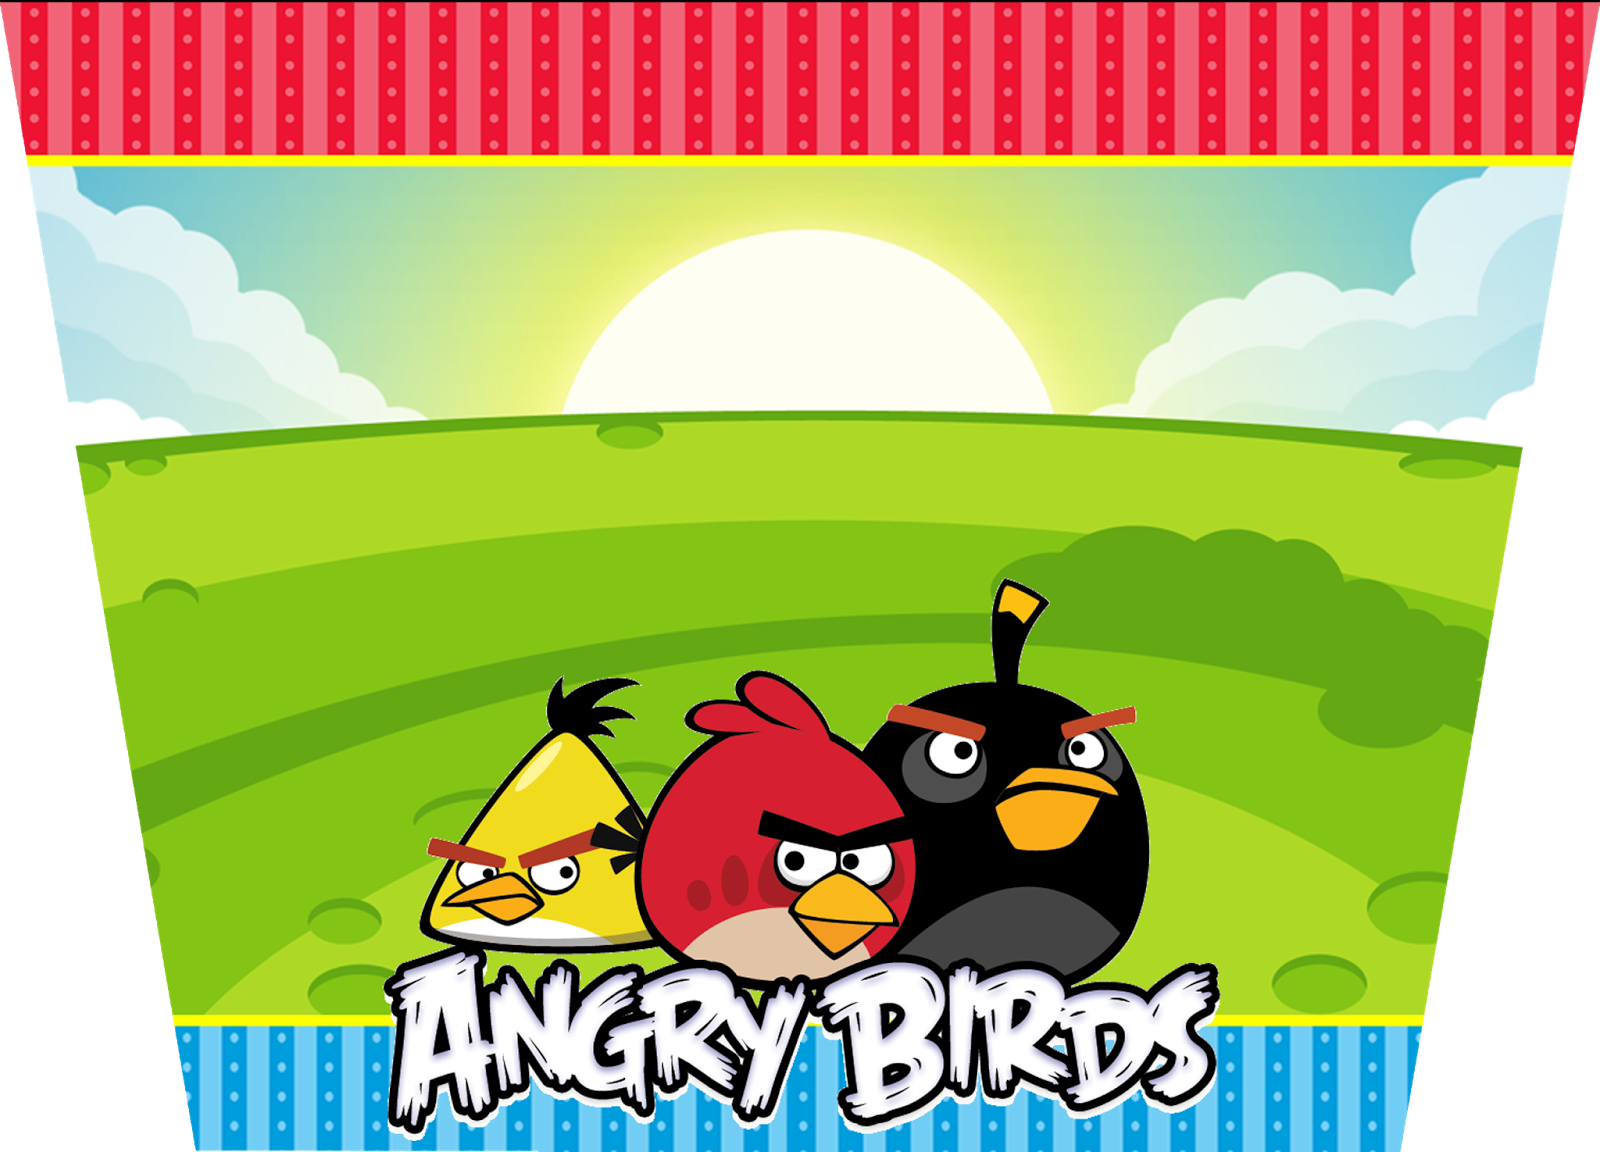 Angry Birds Birthday Party: Free Printable Invitations and Candy Bar Labels. - Oh My Fiesta! for ...